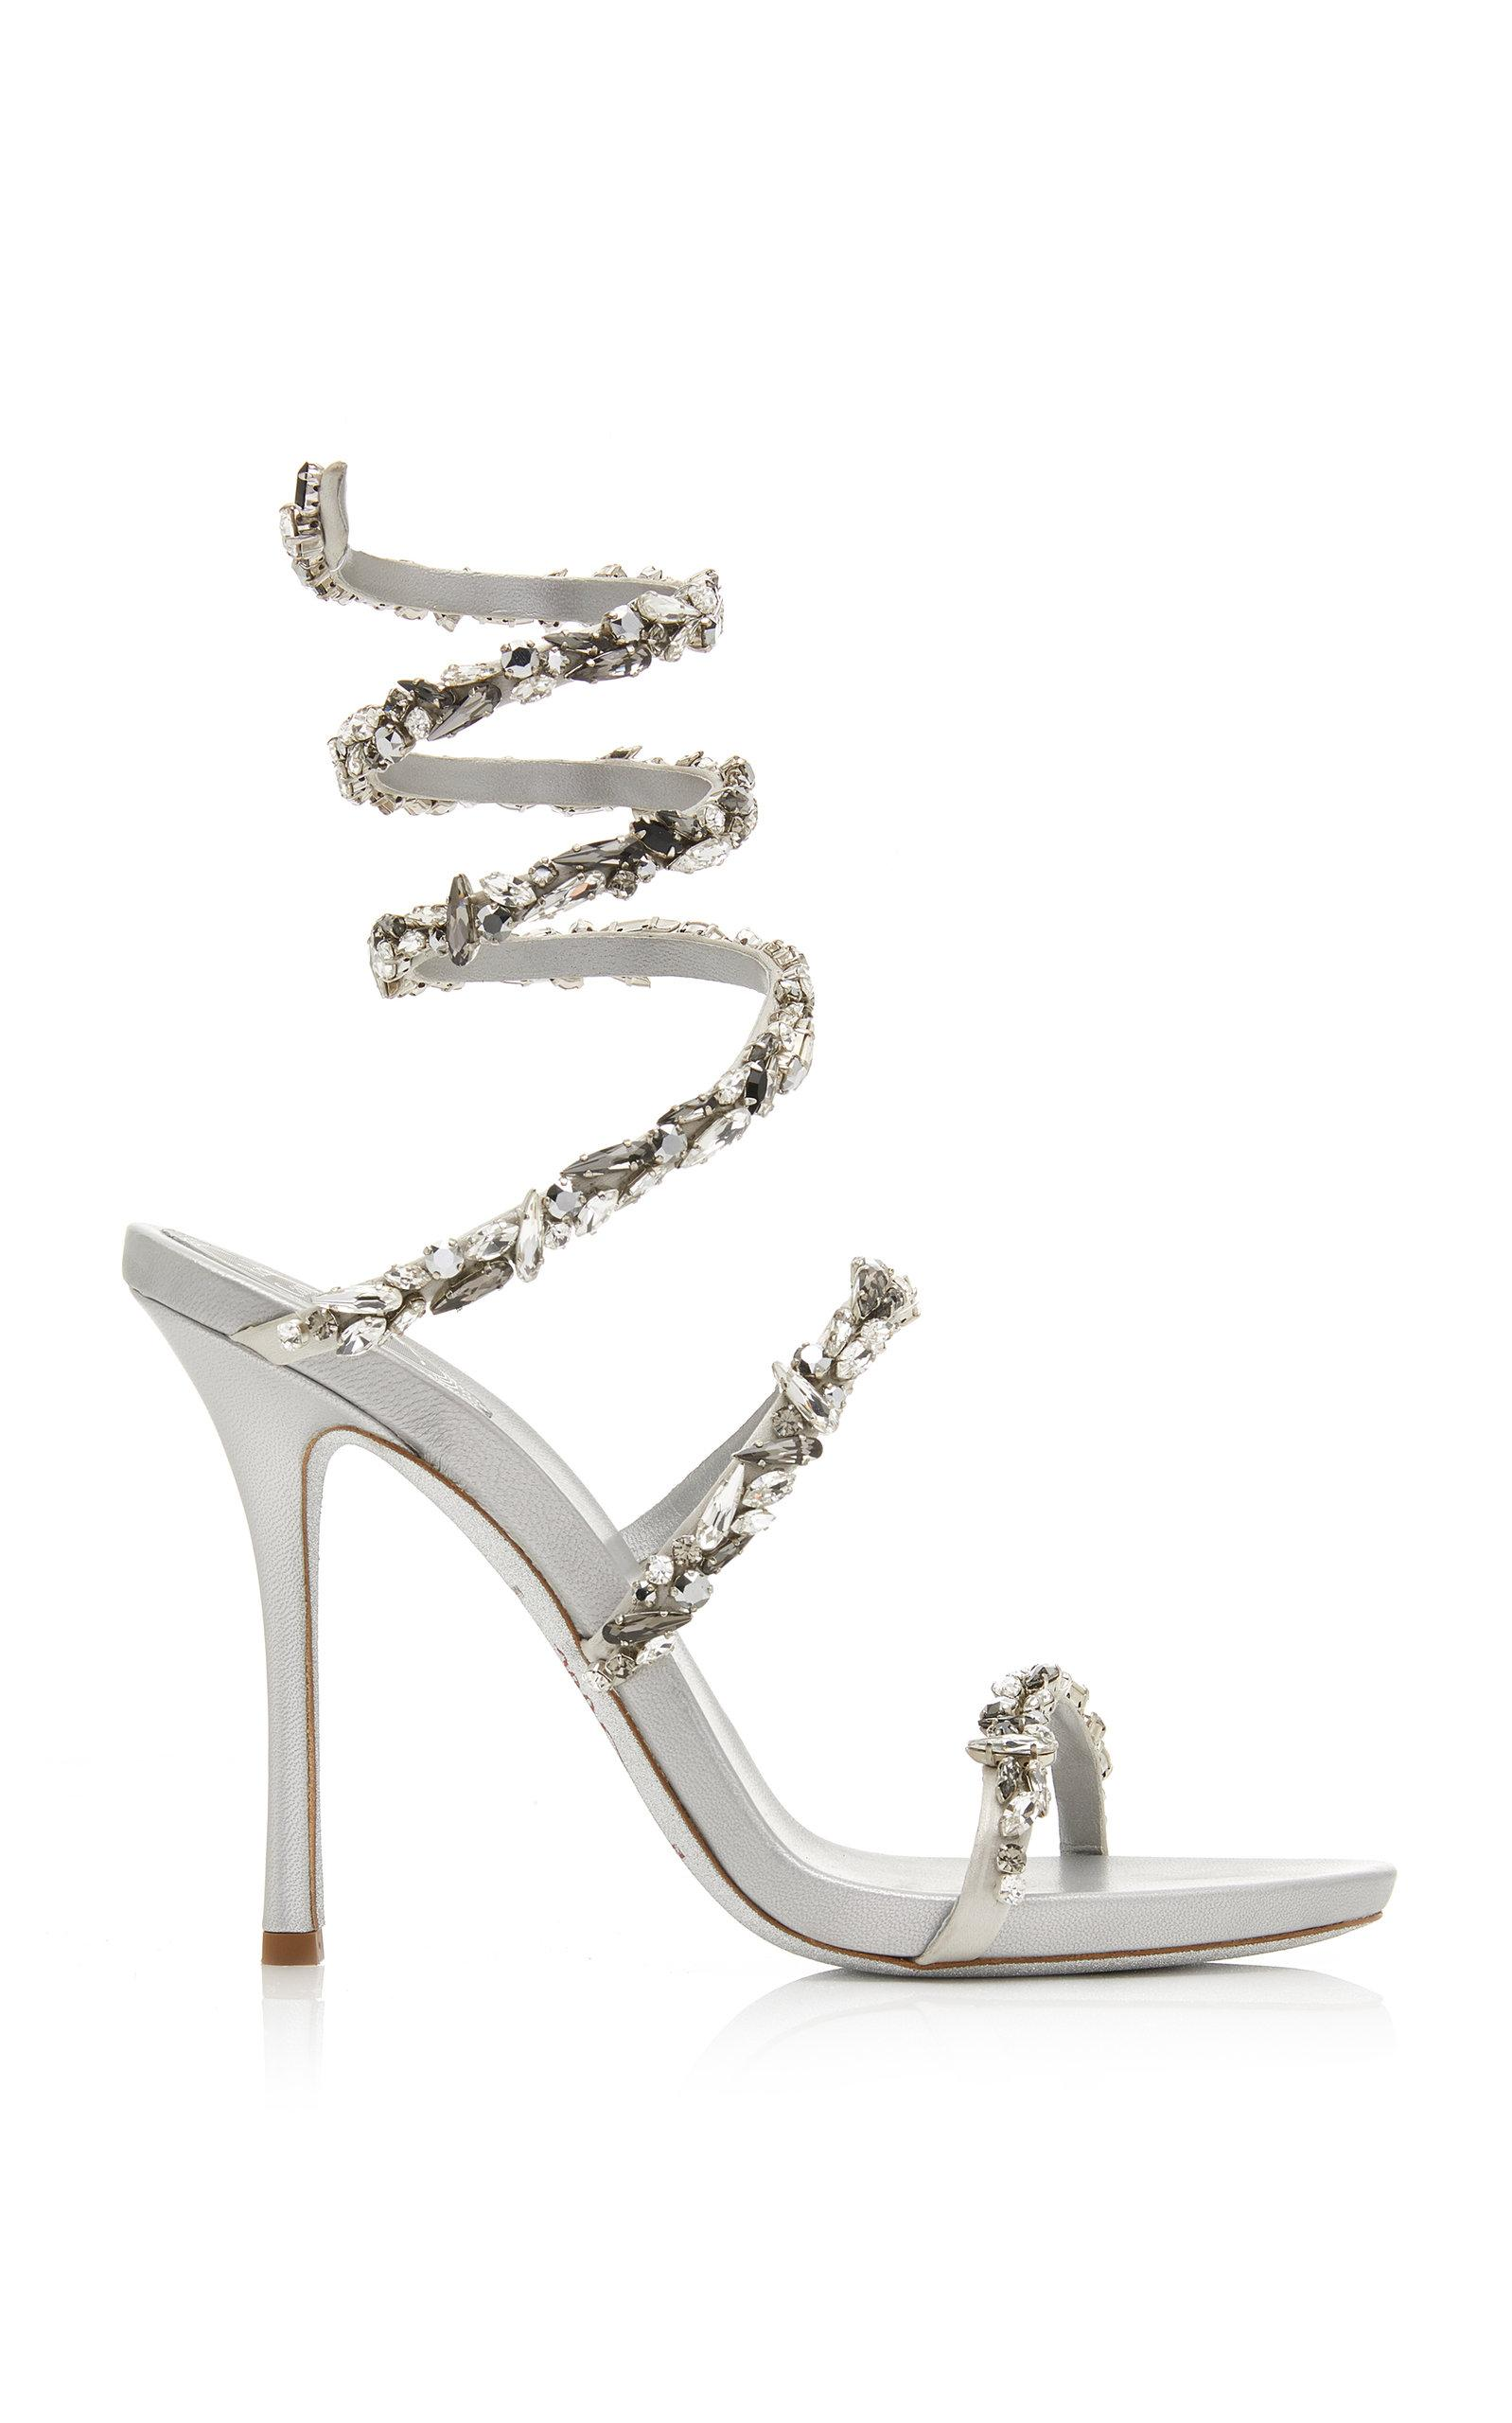 7df077eab Rene Caovilla. Women s Metallic Crystal-embellished Satin Snake-coil Sandals